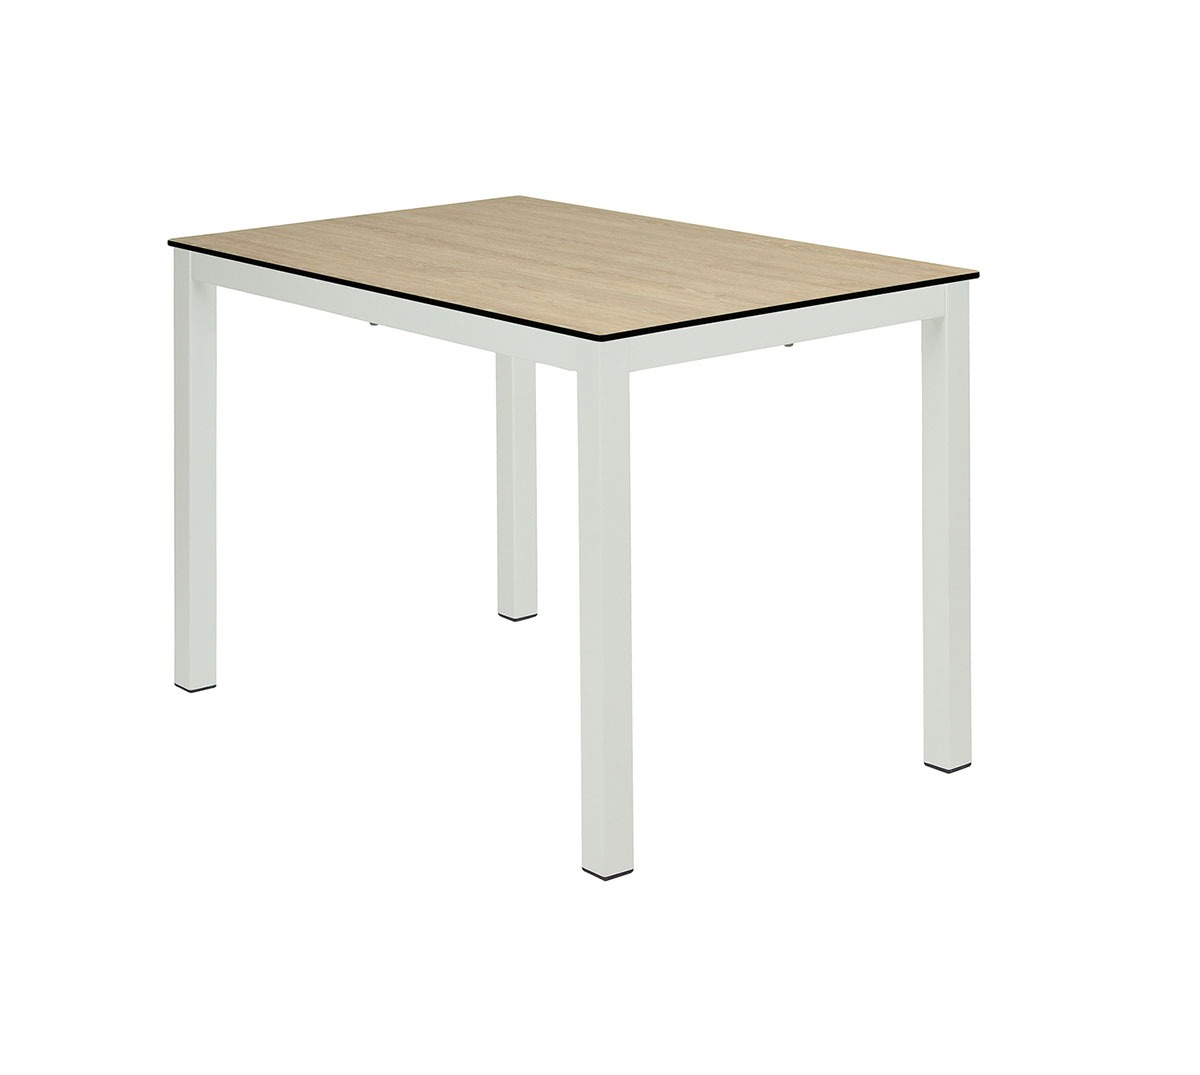 Mesa Glad a 75 rectangular aluminio color blanco texturado tablero compacto roble rural